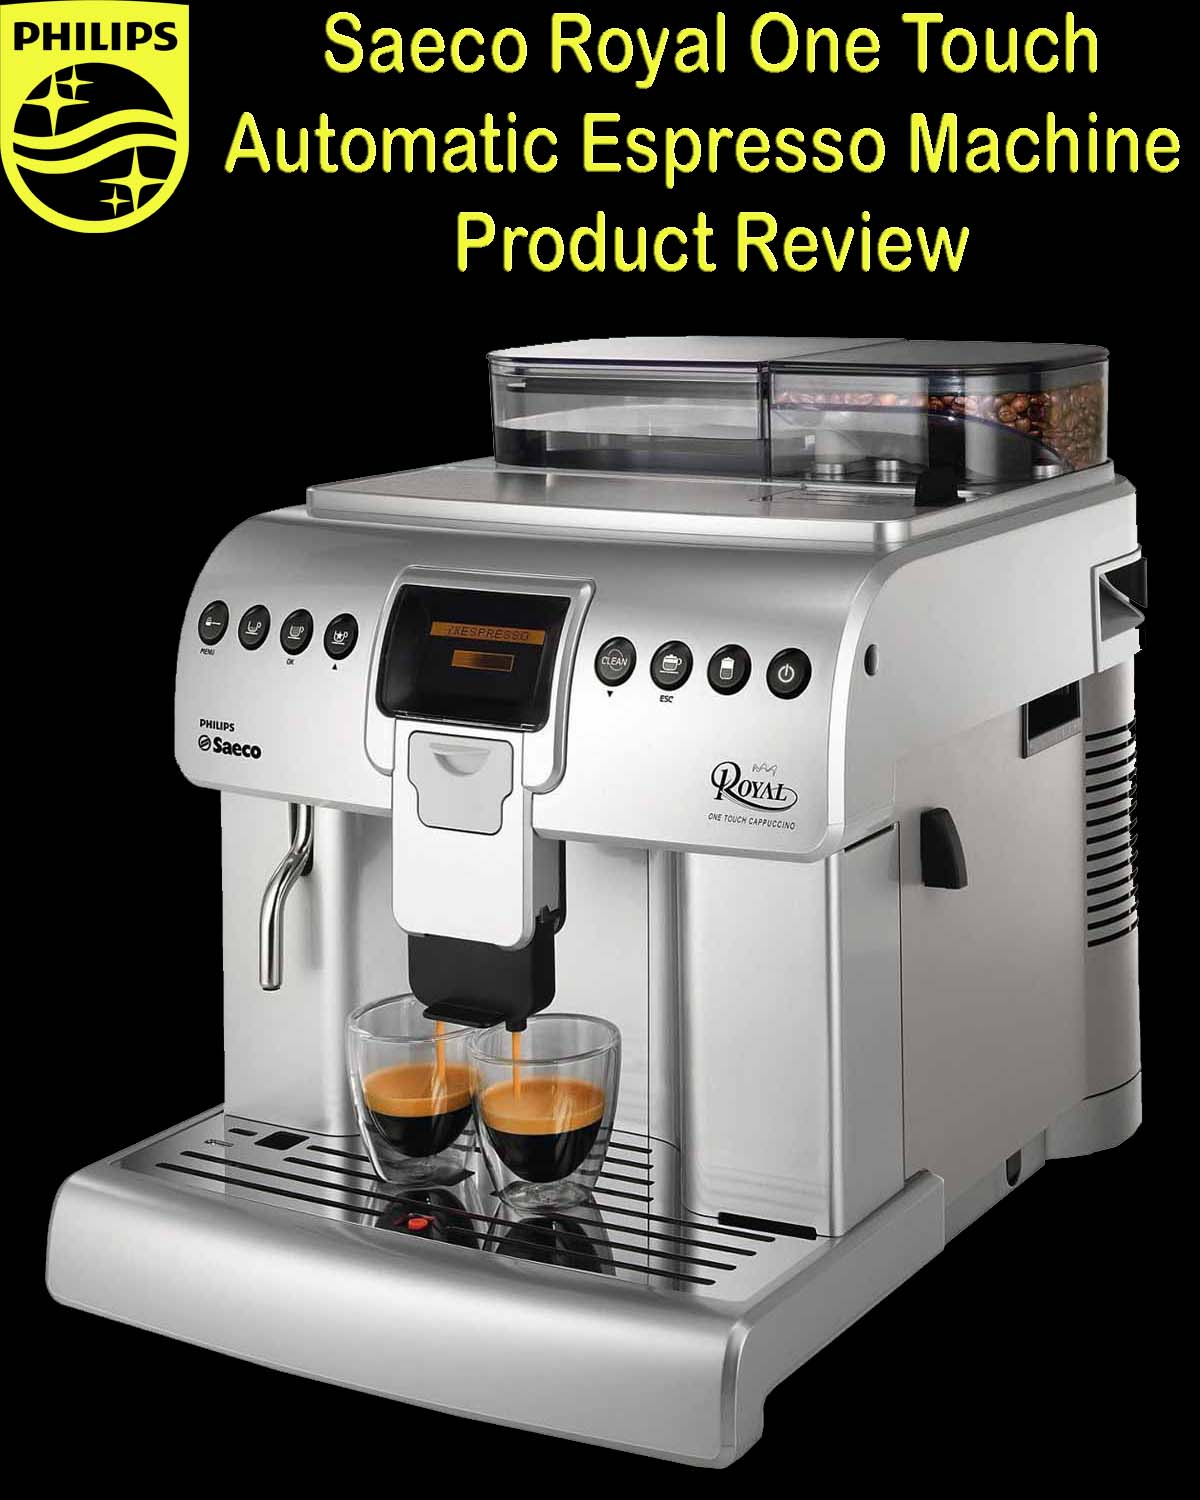 Philips Saeco Royal One Touch Cappuccino Automatic Espresso